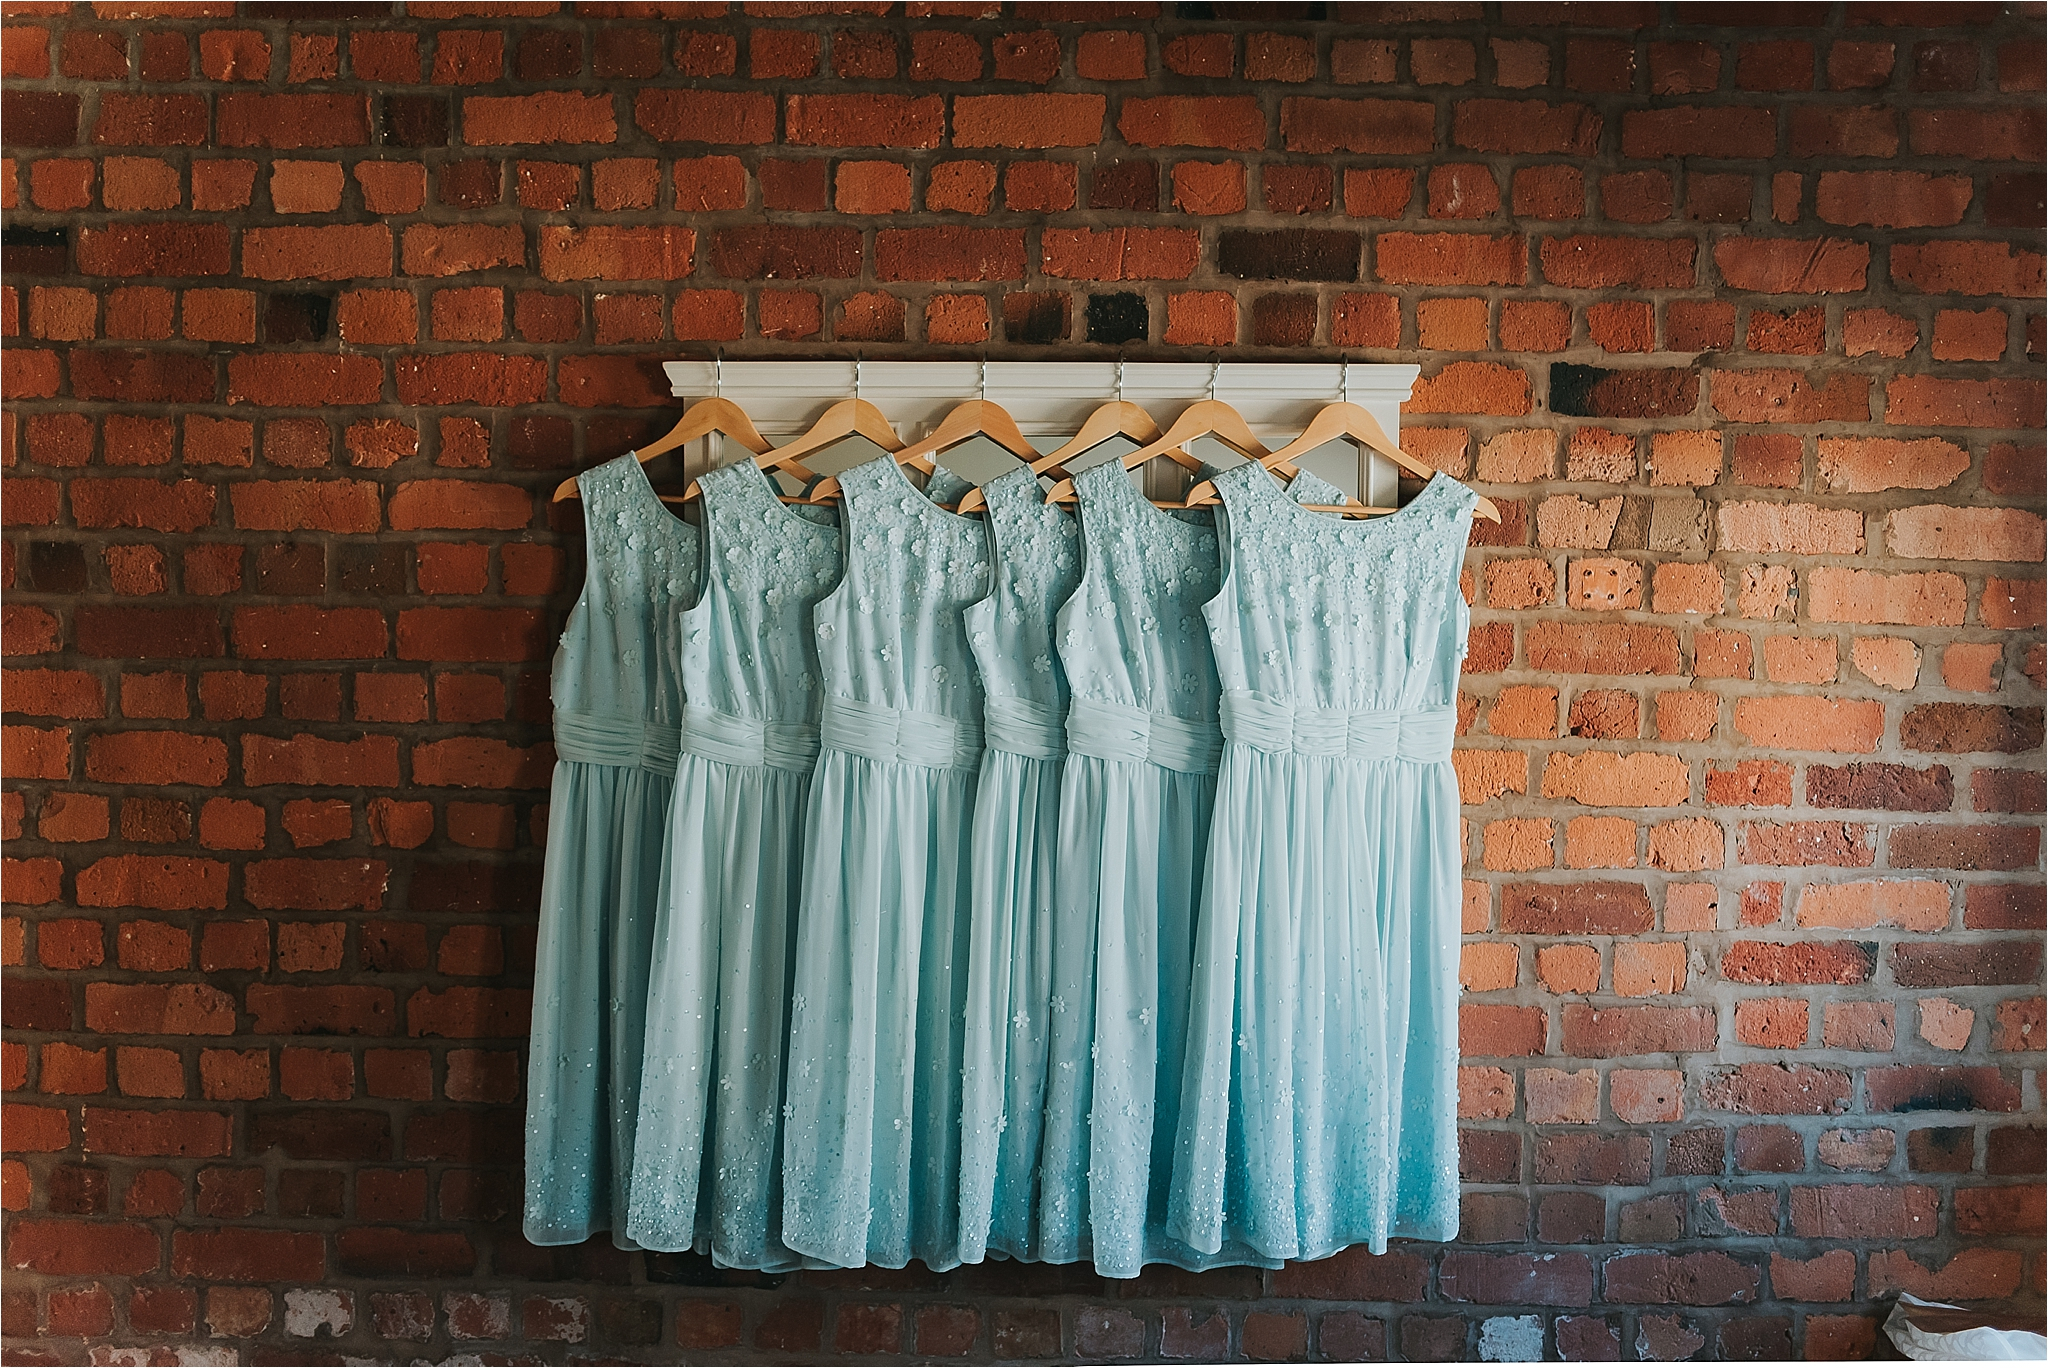 jasper conran bridesmaid dresses